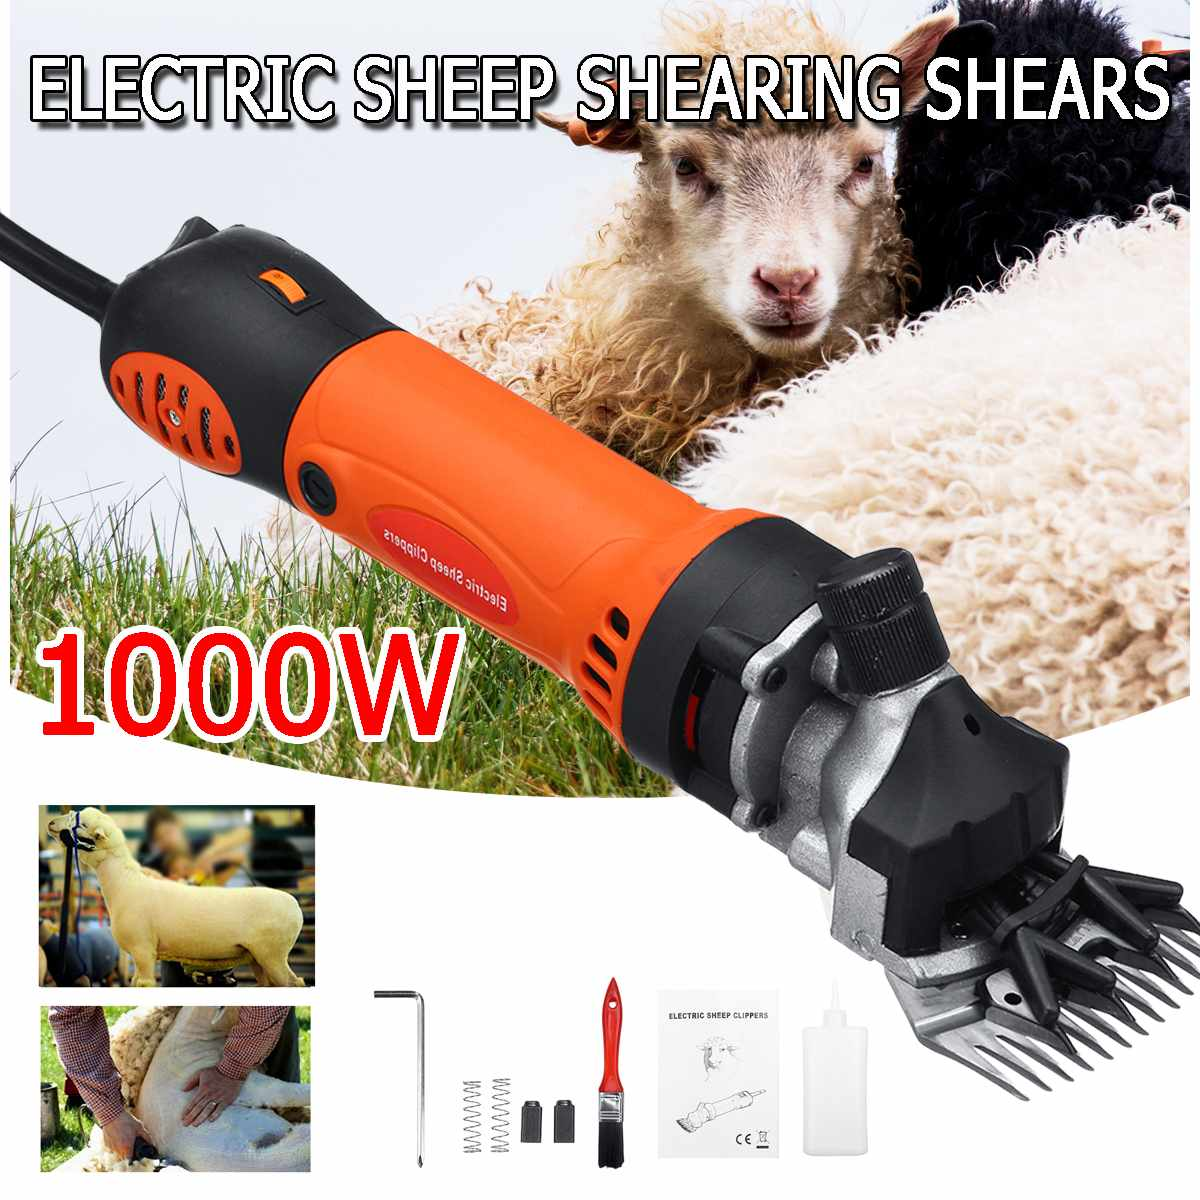 1000W 220V 6 Gears Speed Electric Sheep Goat Shearing Machine Trimmer Tool Wool Scissor Cut Machine With Box